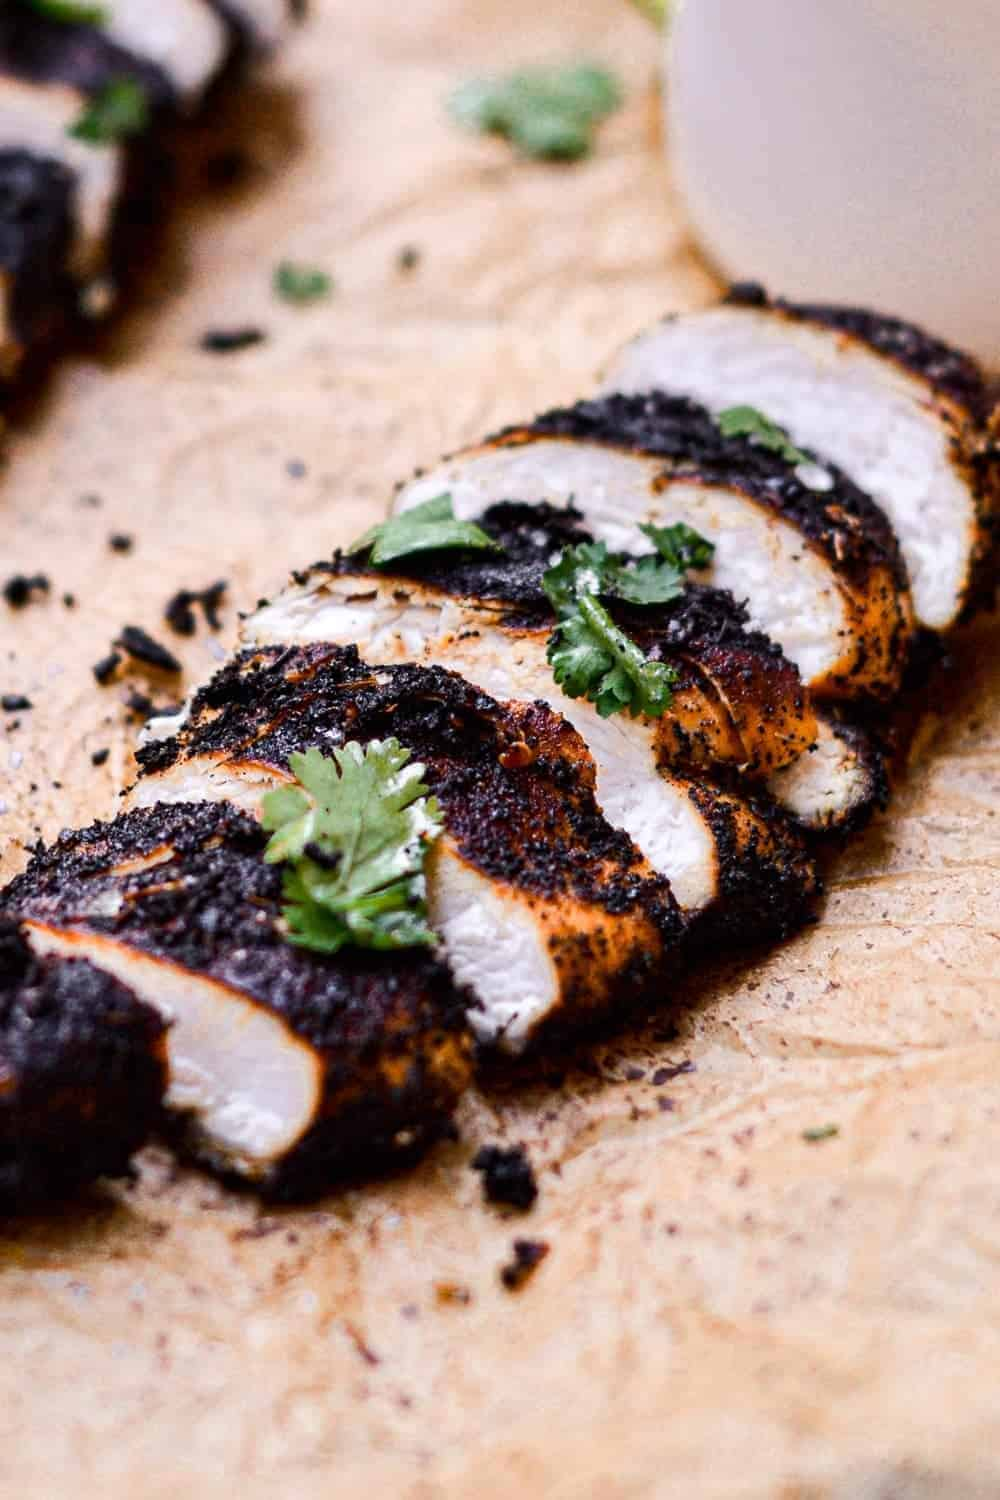 Blackened chicken garnished with fresh herbs